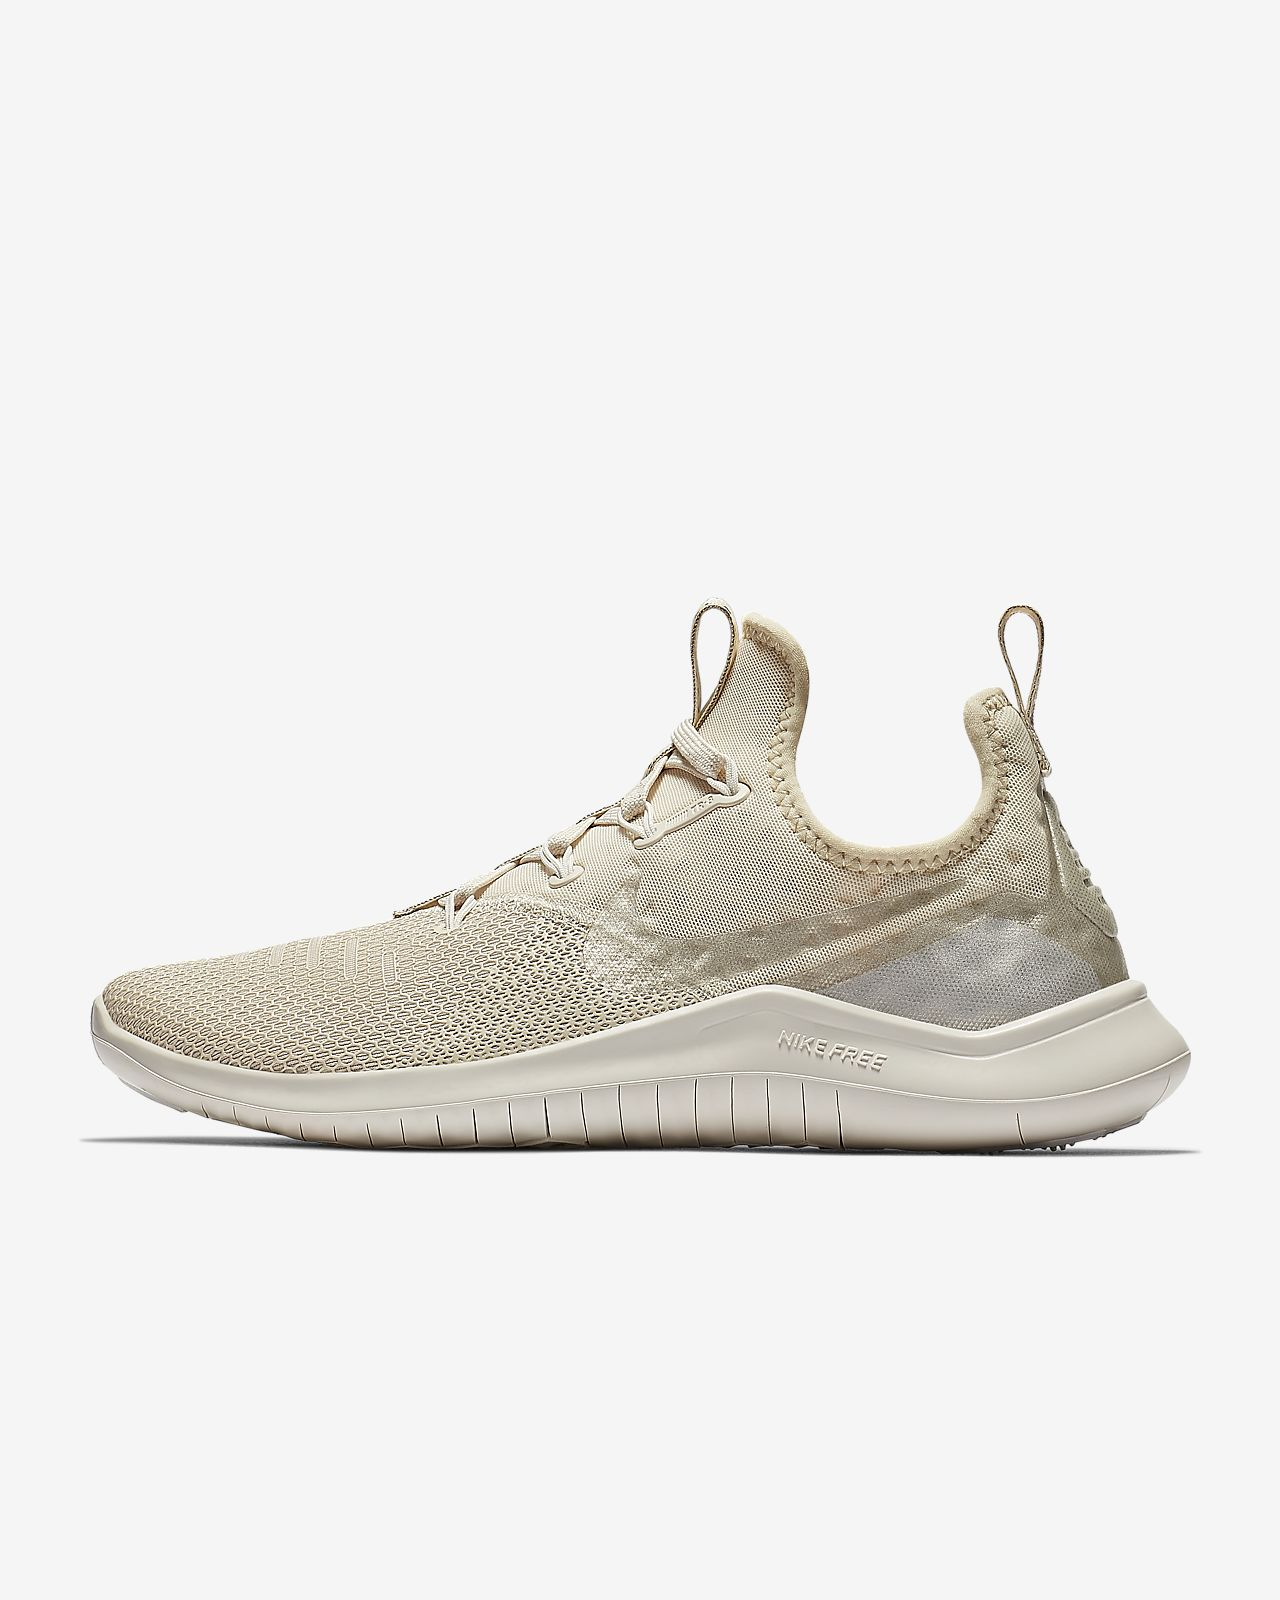 Nike Free TR 8 Champagne Women's Training Shoe